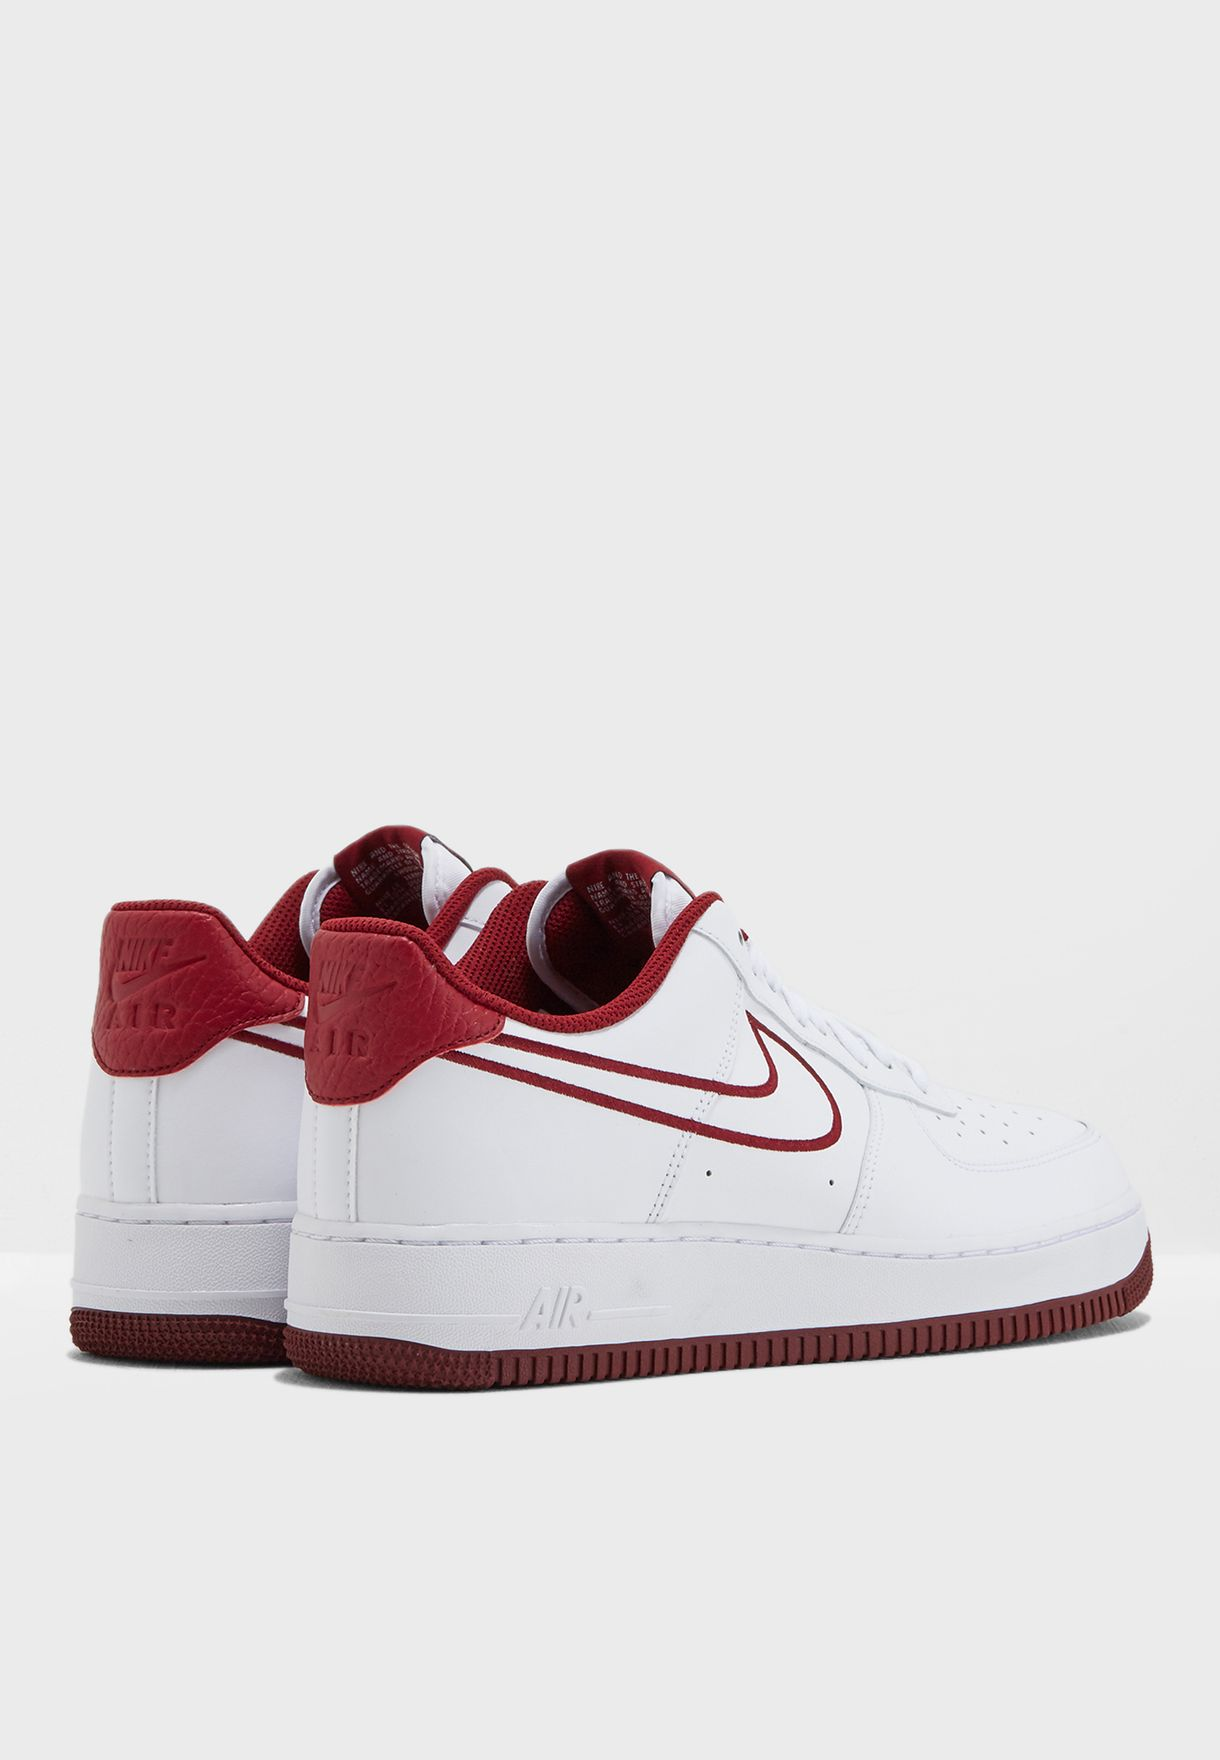 Nike Air Force 1 '07 Leather White Team Red AJ7280 100 Mens Womens Running Shoes aj7280 100